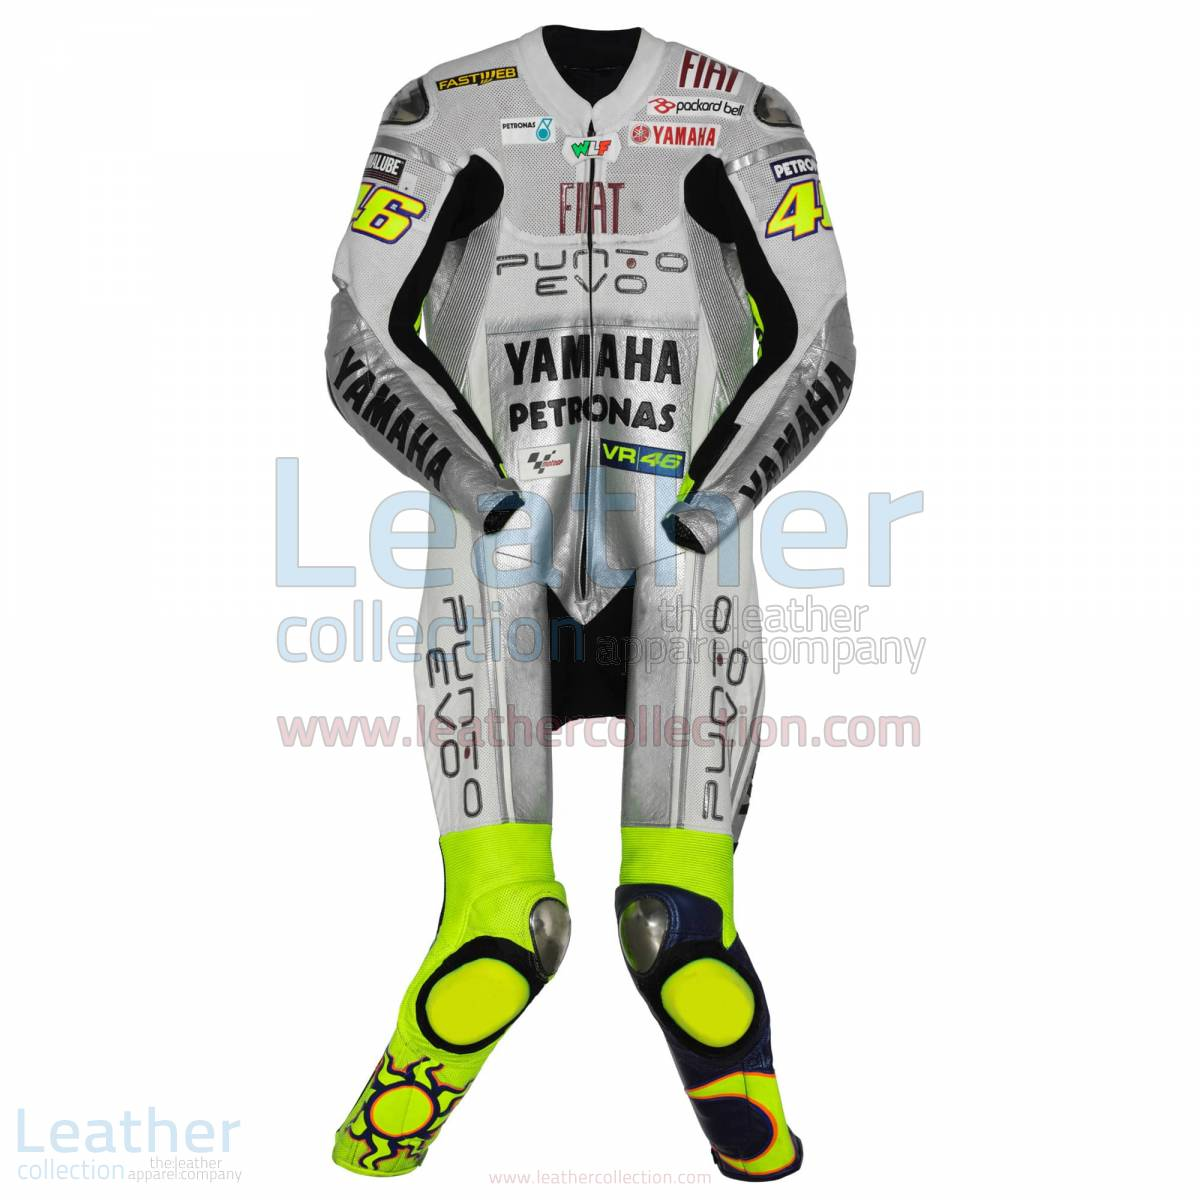 Valentino Rossi Yamaha Fiat 2009 Racing Suit